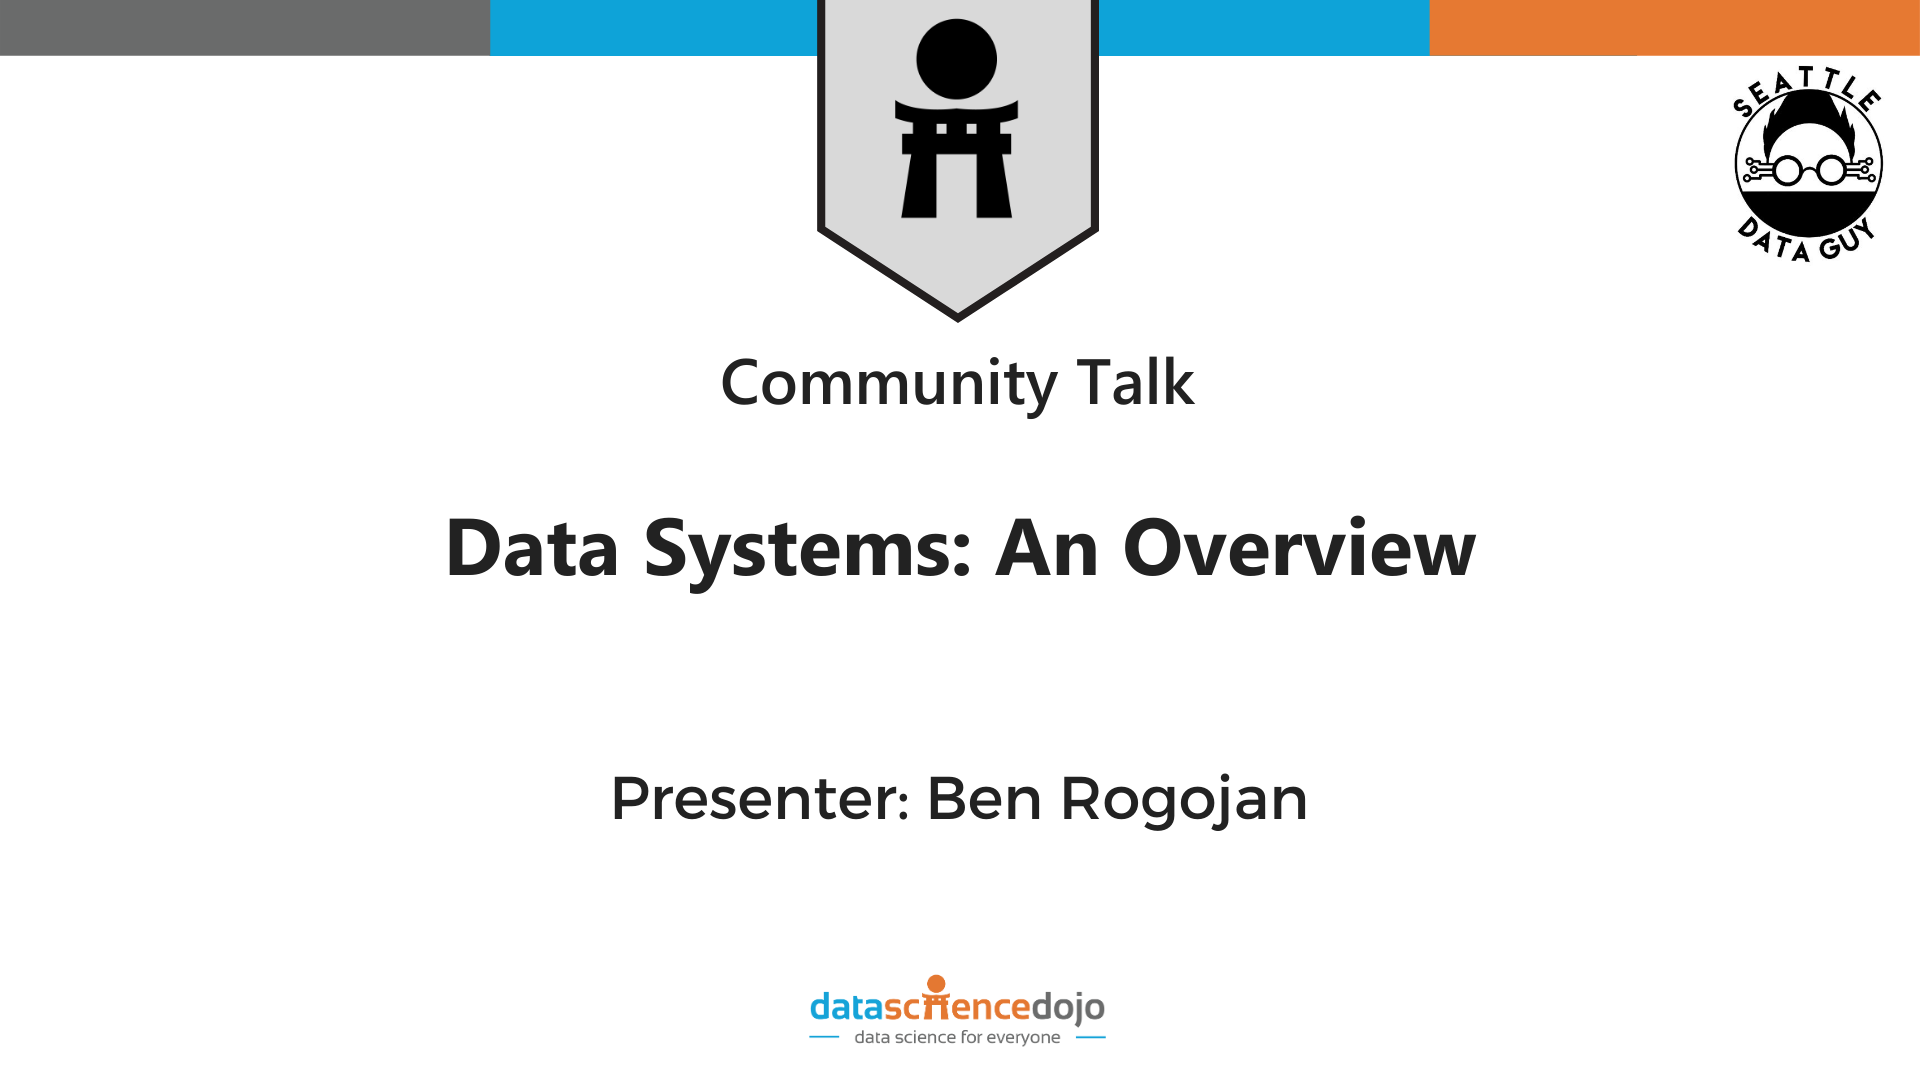 data systems an overview » Data Science Dojo